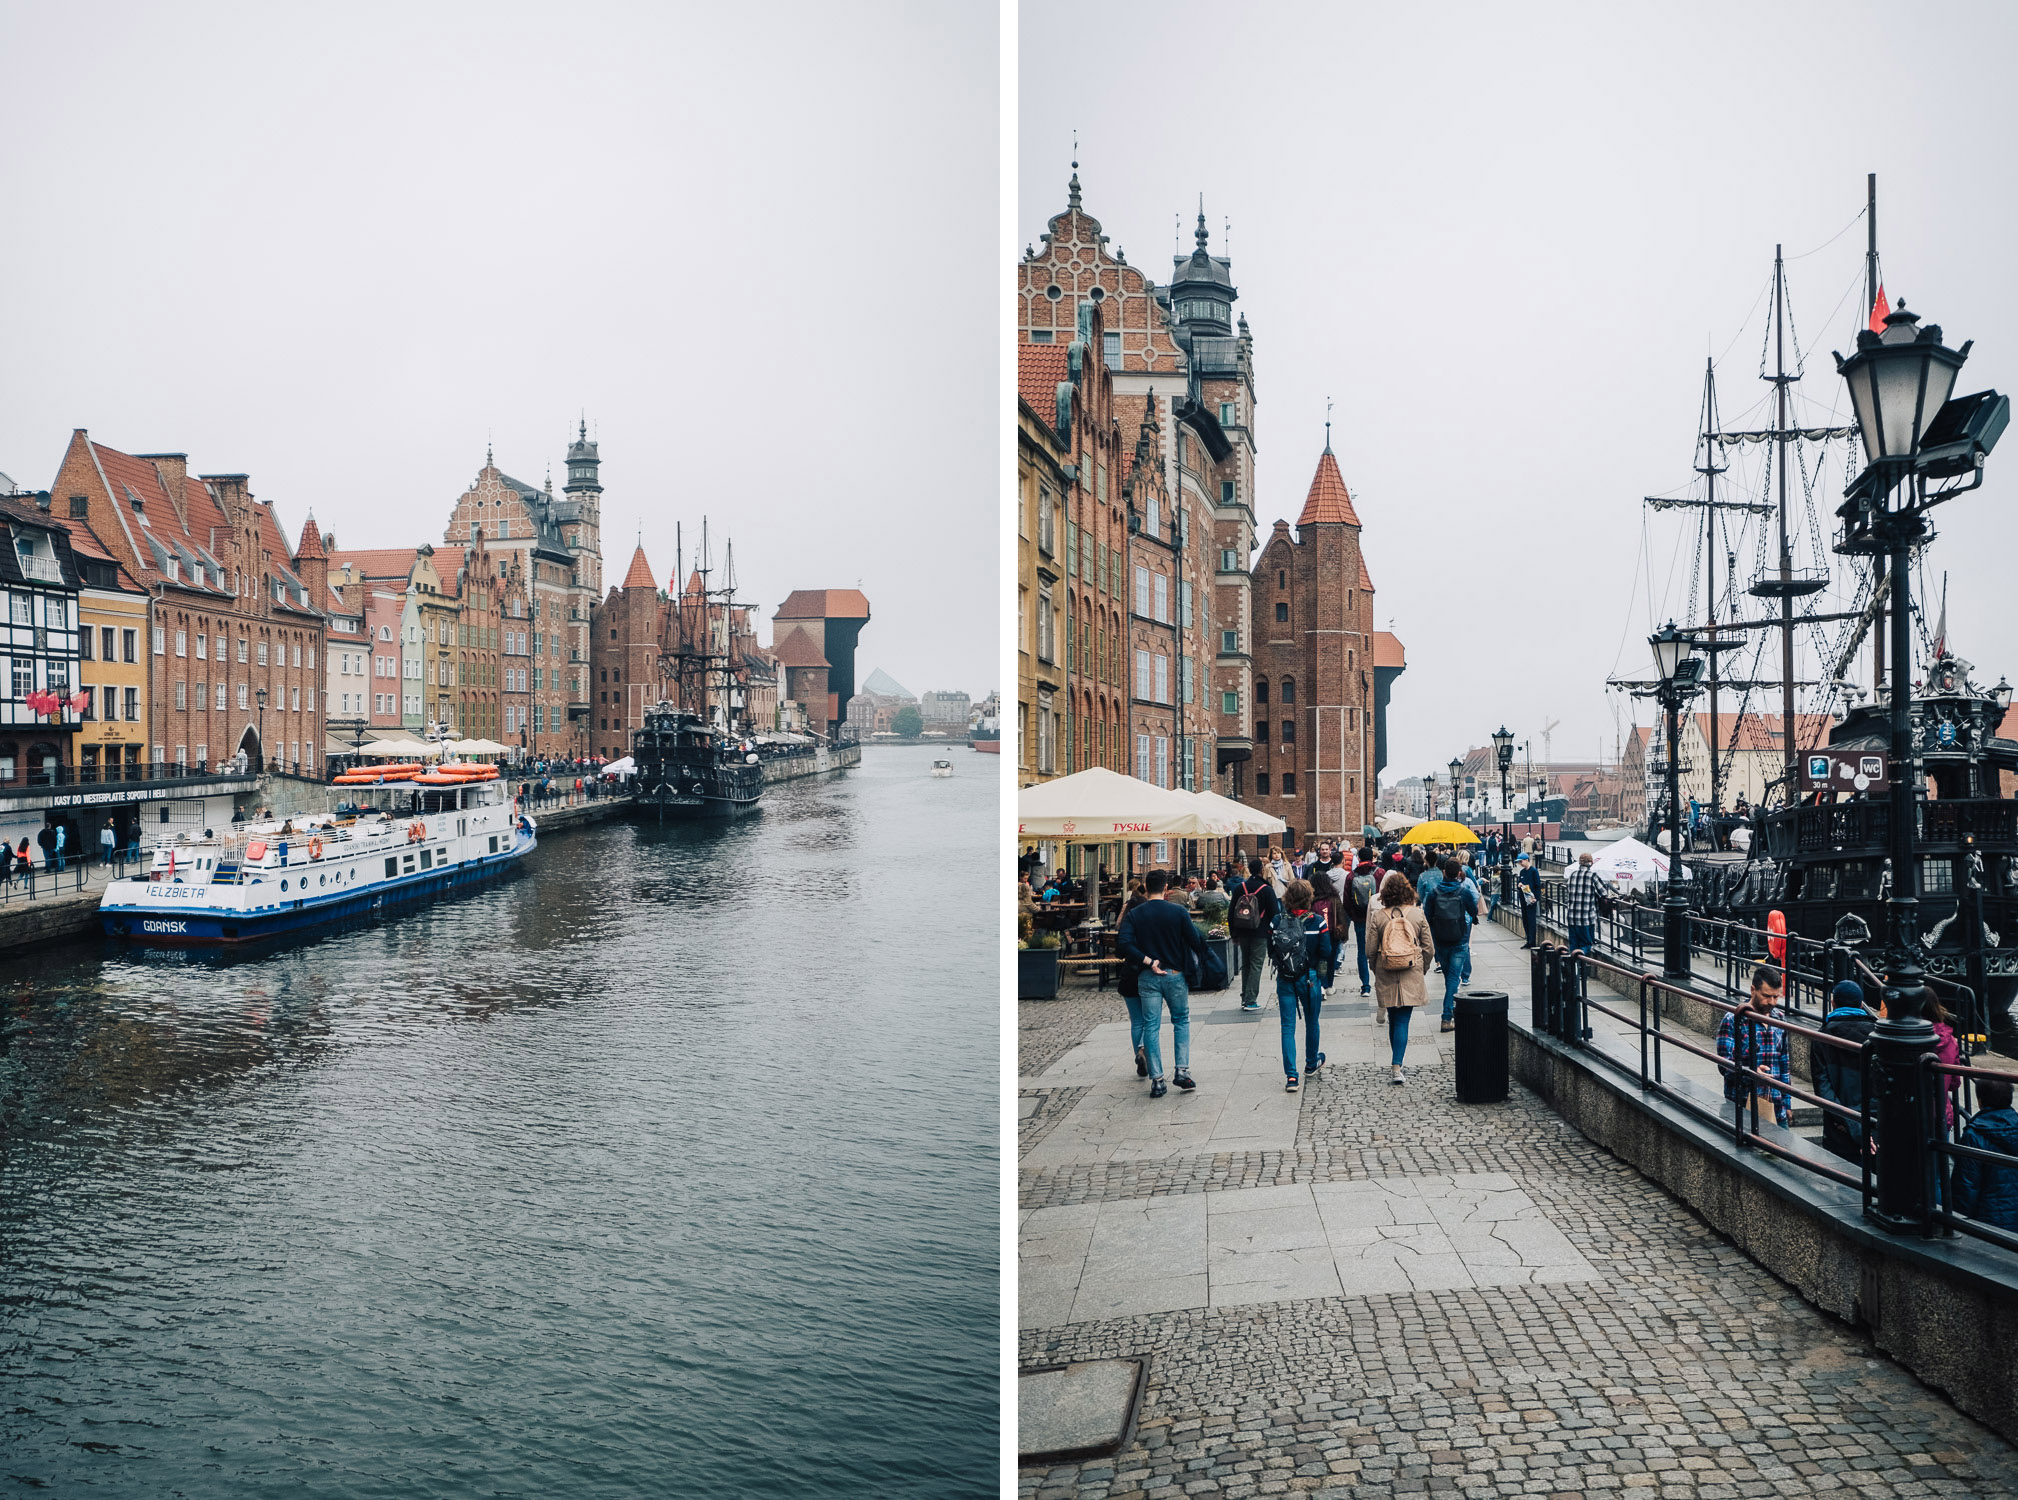 The picturesque Gdansk riverfront in Poland